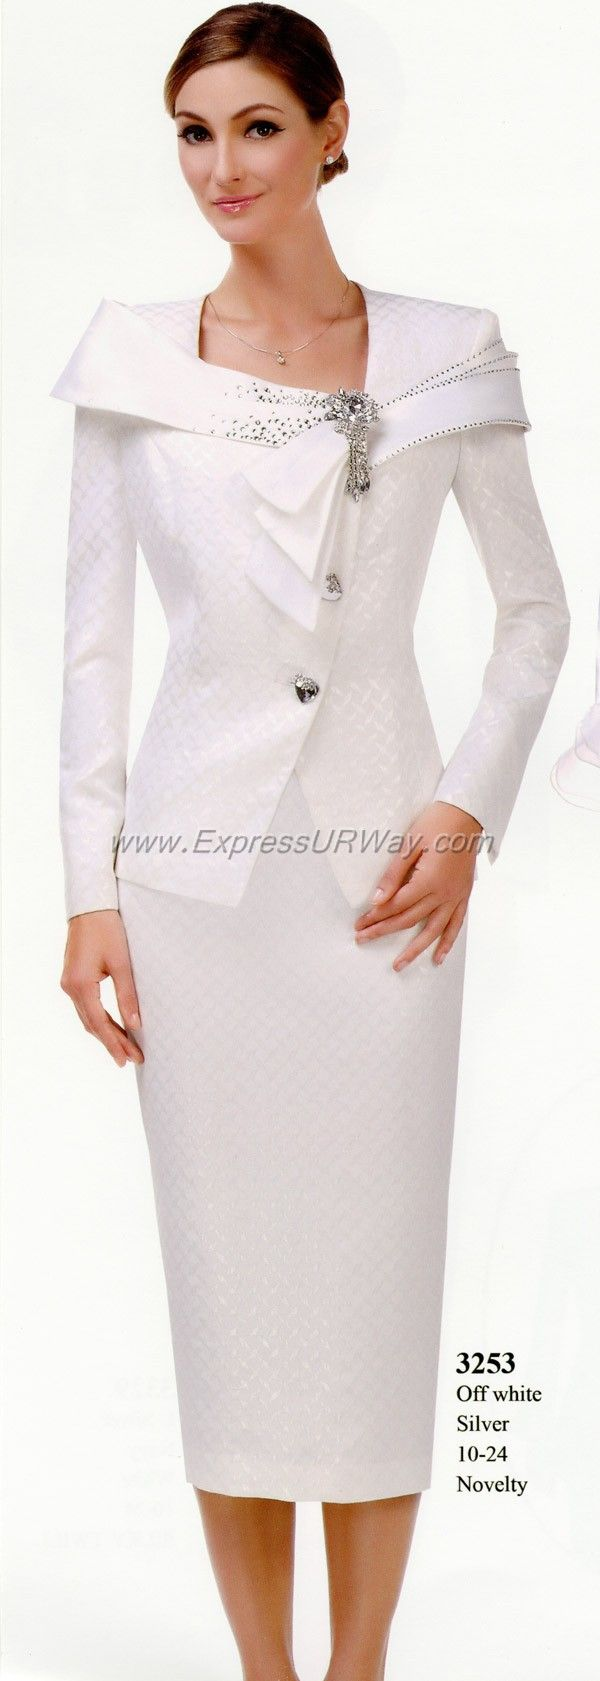 ExpressURWay We carry the largest selection available online of Women's Church Suits and Matching Hats, Career Wear & Special Occasion. pav-testcode.tk